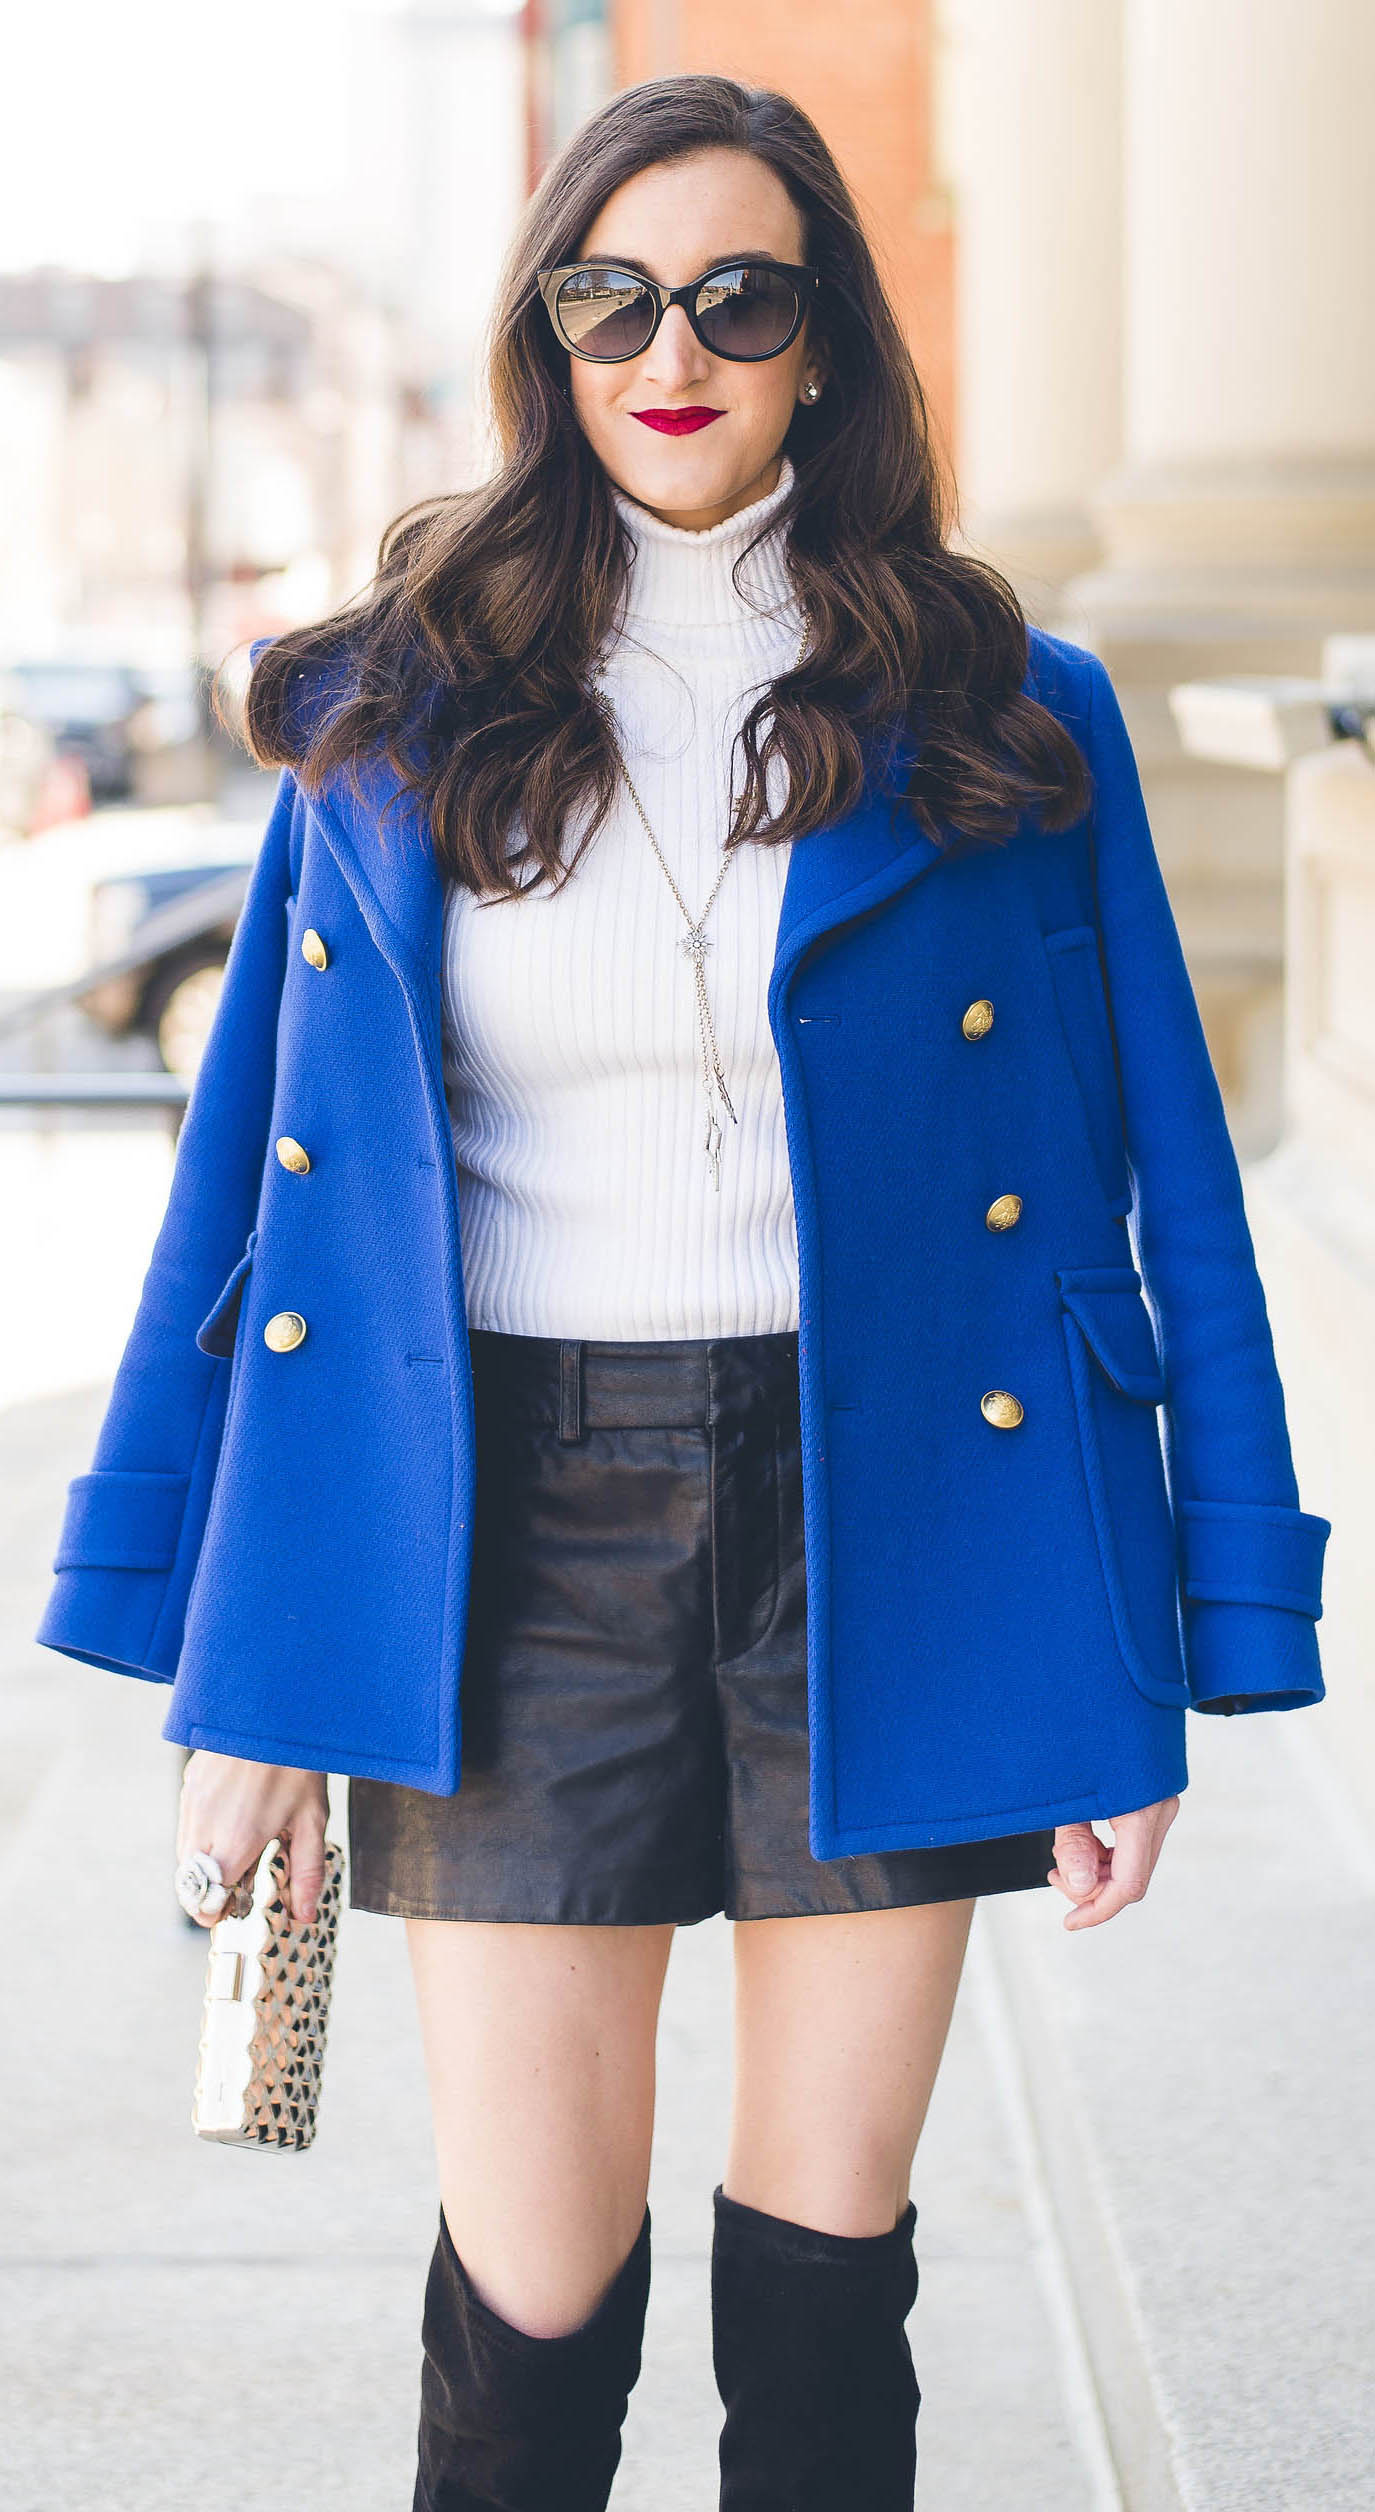 black-shorts-leather-white-sweater-turtleneck-brun-sun-black-shoe-boots-otk-cobalt-blue-med-jacket-coat-peacoat-fall-winter-lunch.jpg